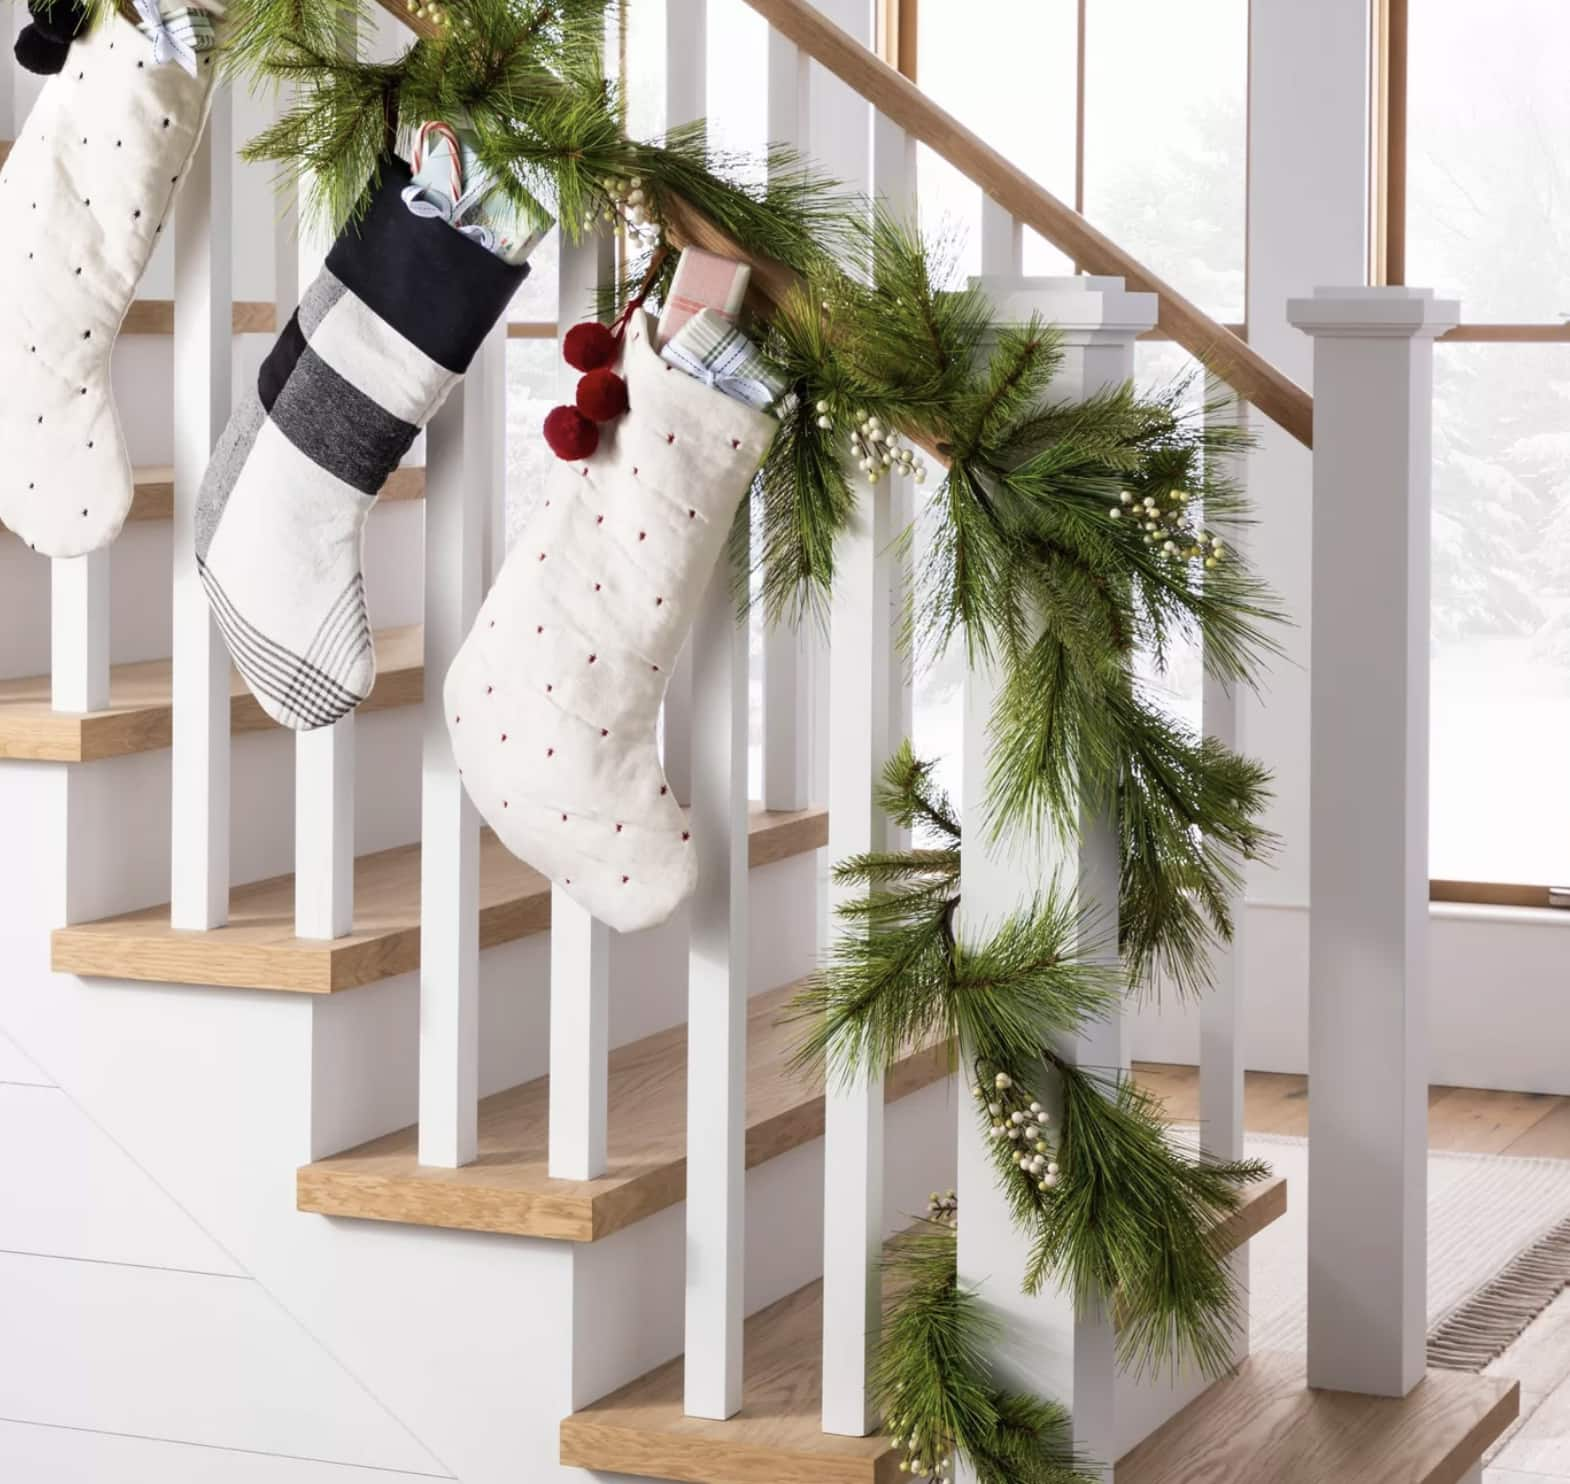 Pine garland wrapped around a staircase with stockings